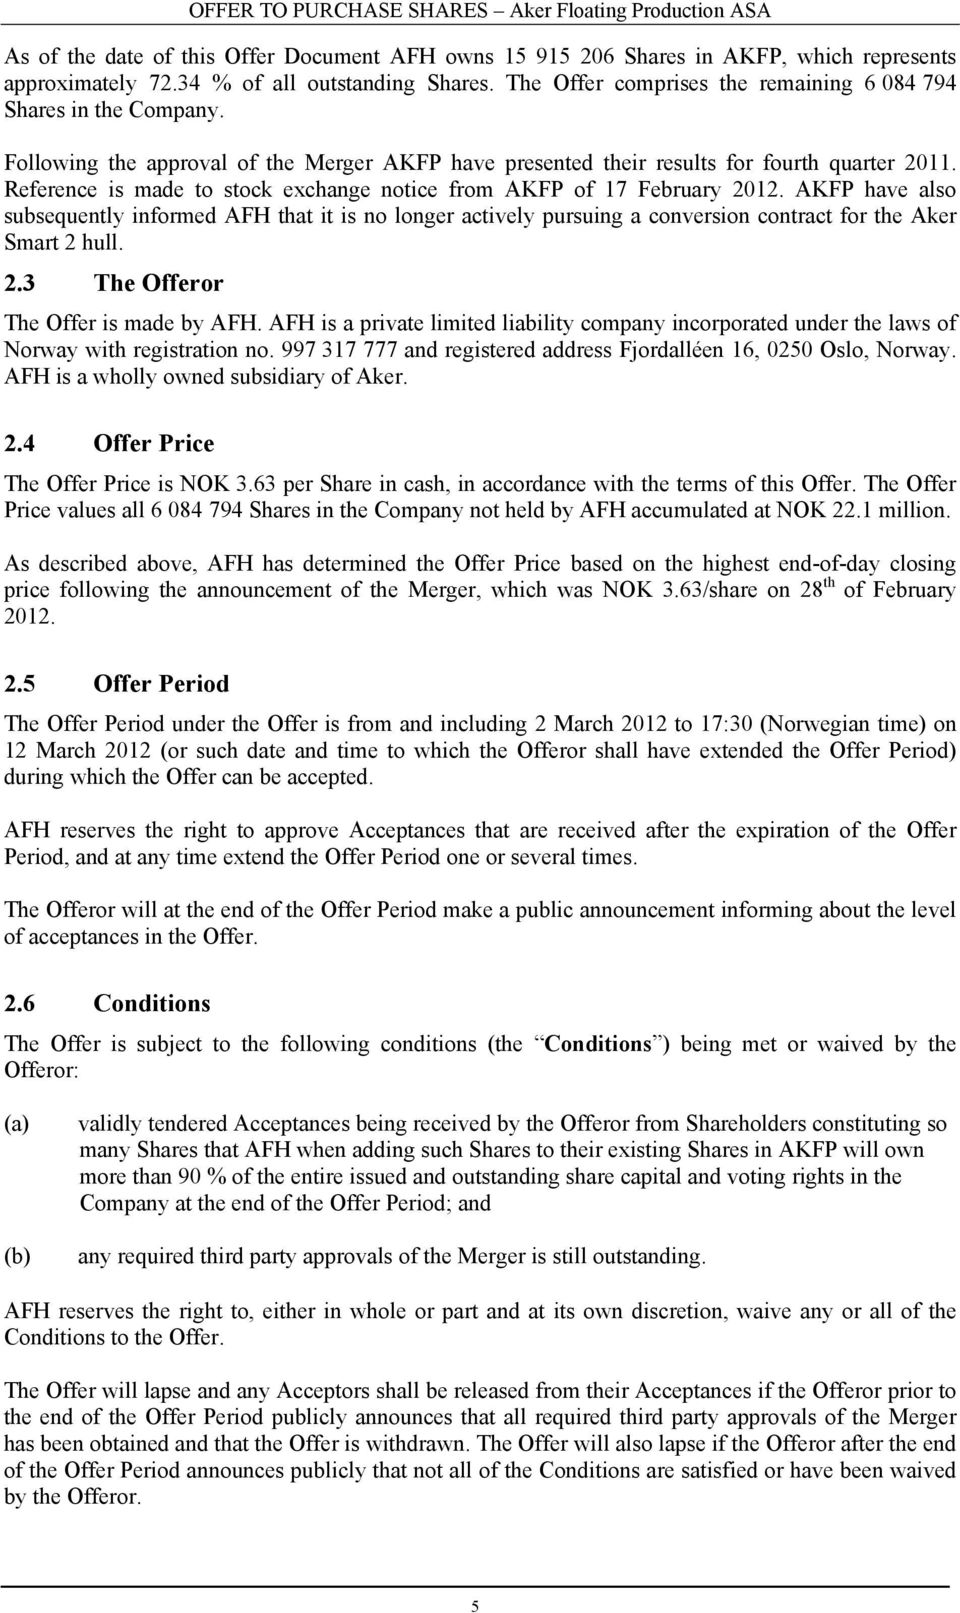 Reference is made to stock exchange notice from AKFP of 17 February 2012.